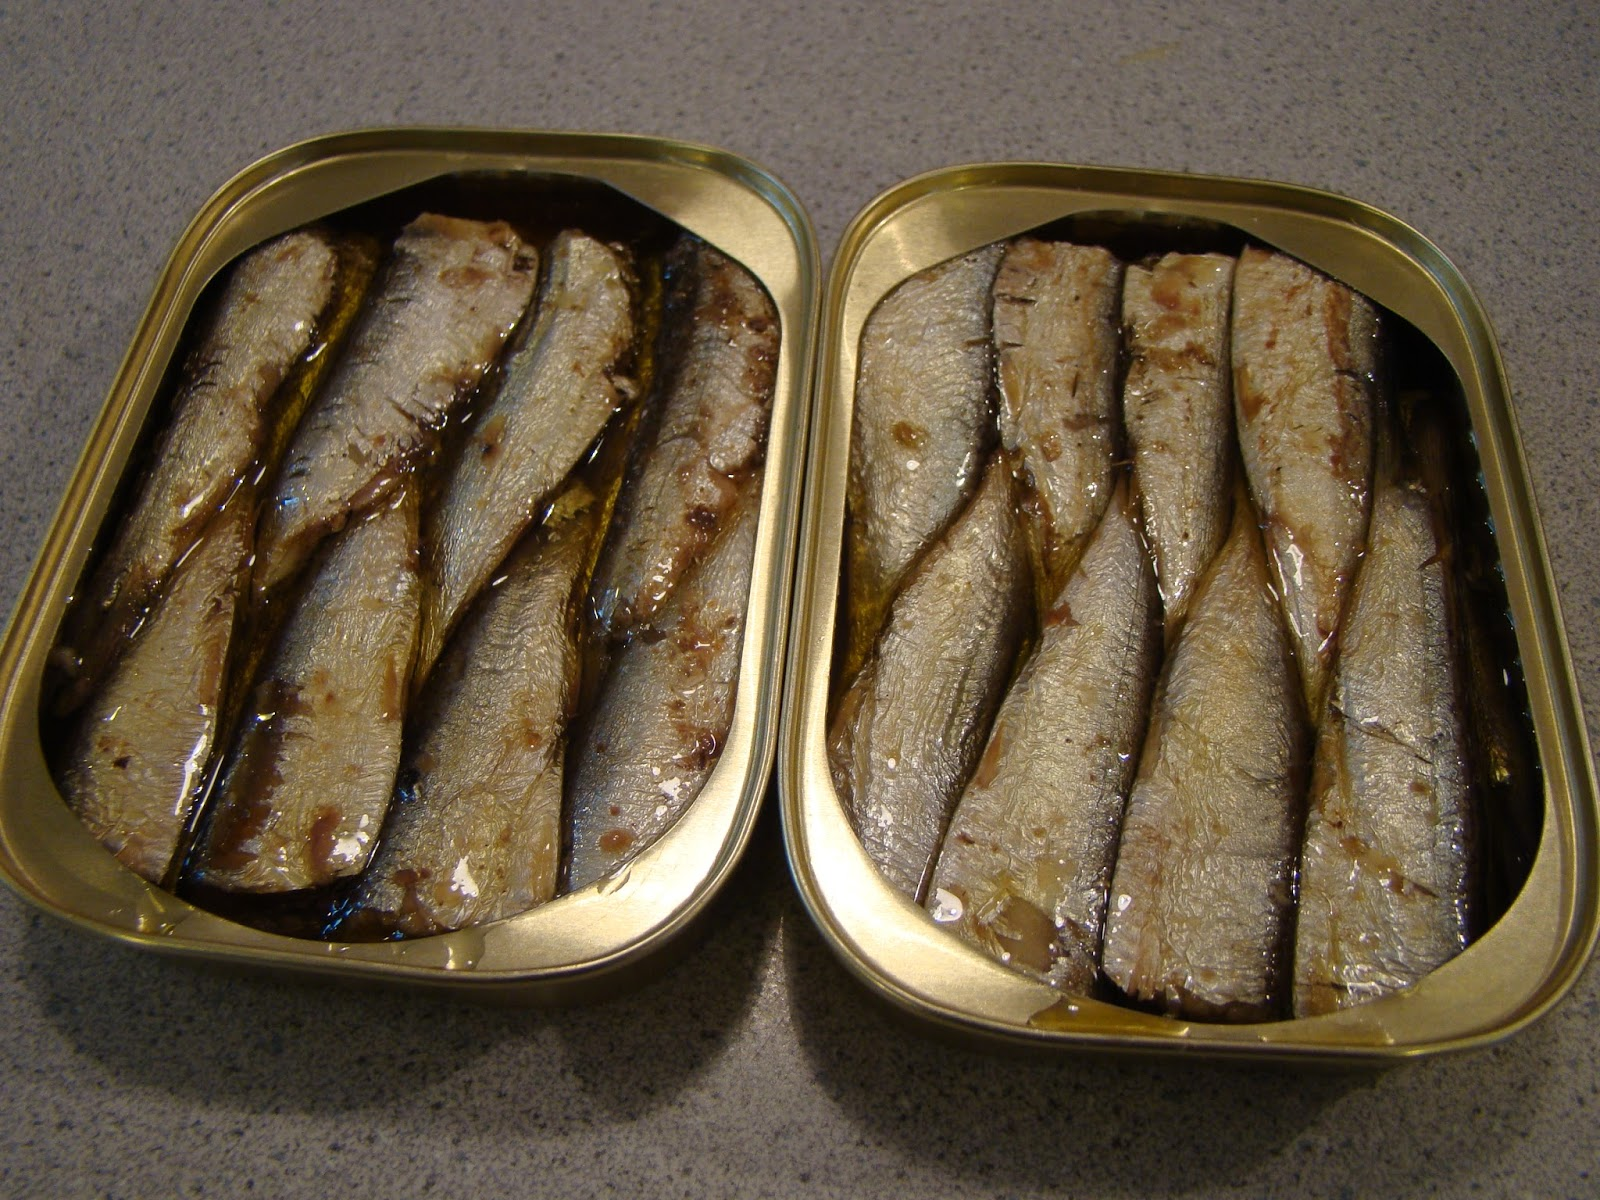 Canned Sardines Manufacturers Indonesia